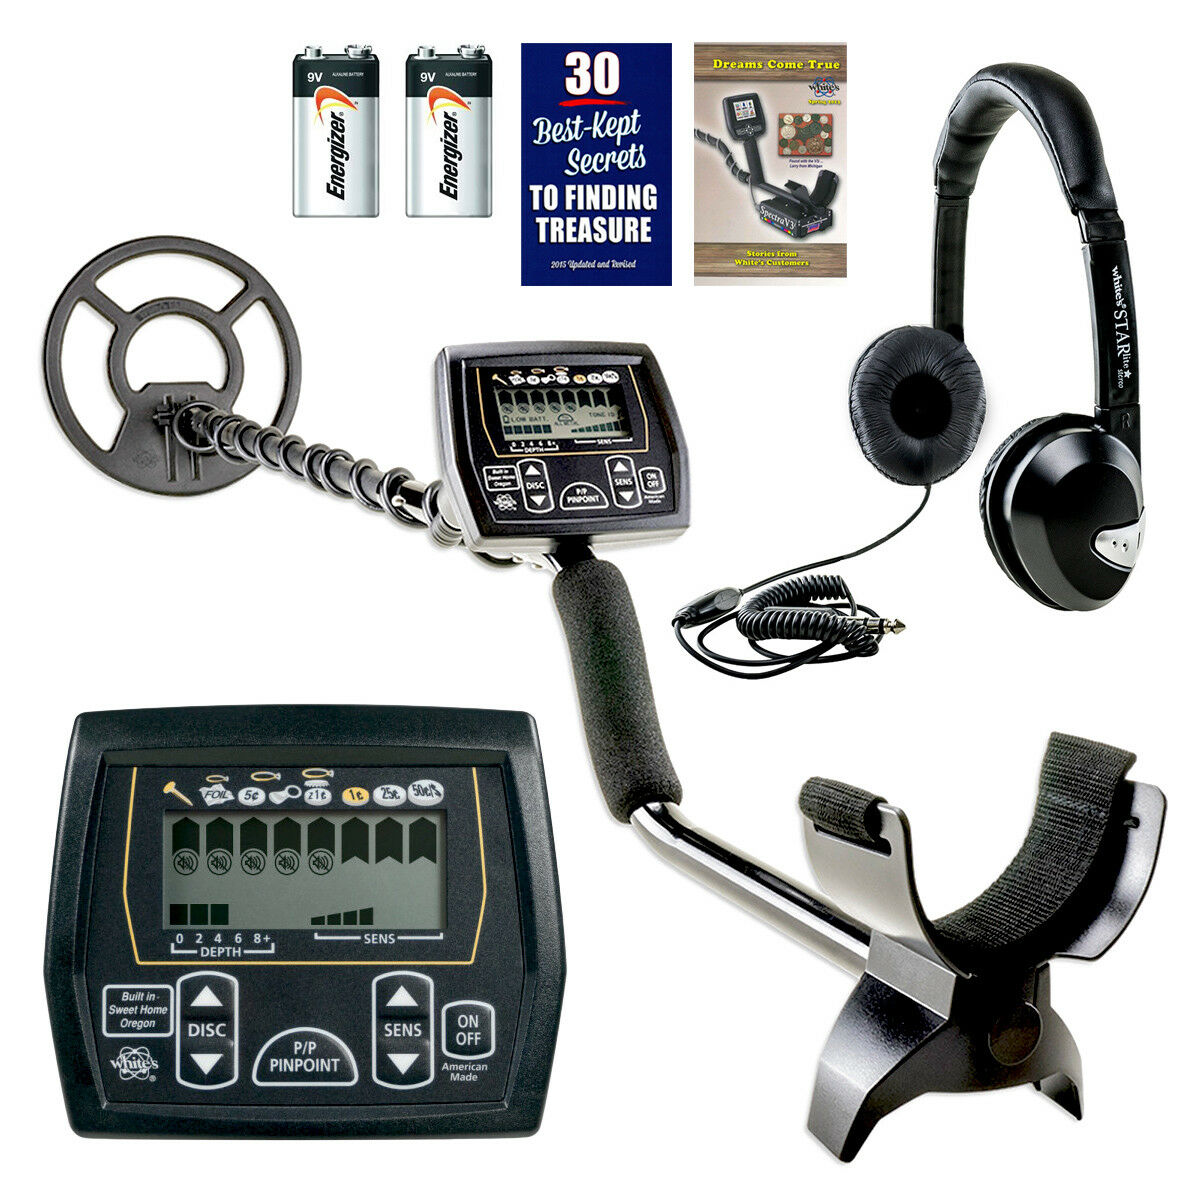 Whites Coinmaster Metal Detector 9 Waterproof Search Coil 2 Yr Ebay Home Made Norton Secured Powered By Verisign